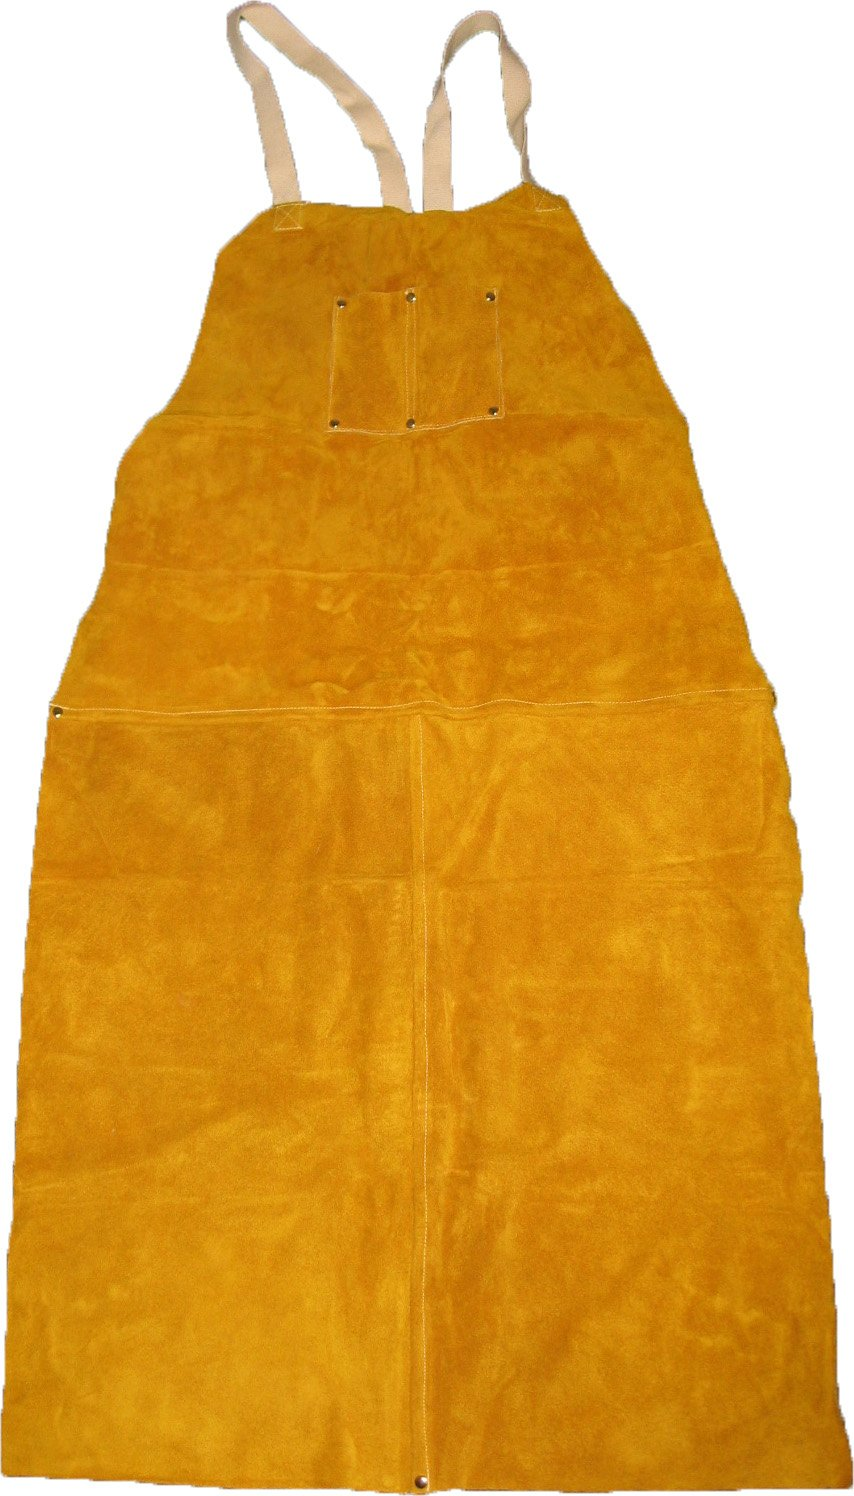 US Forge 99406 Leather Welding Apron with 42-Inch Bib